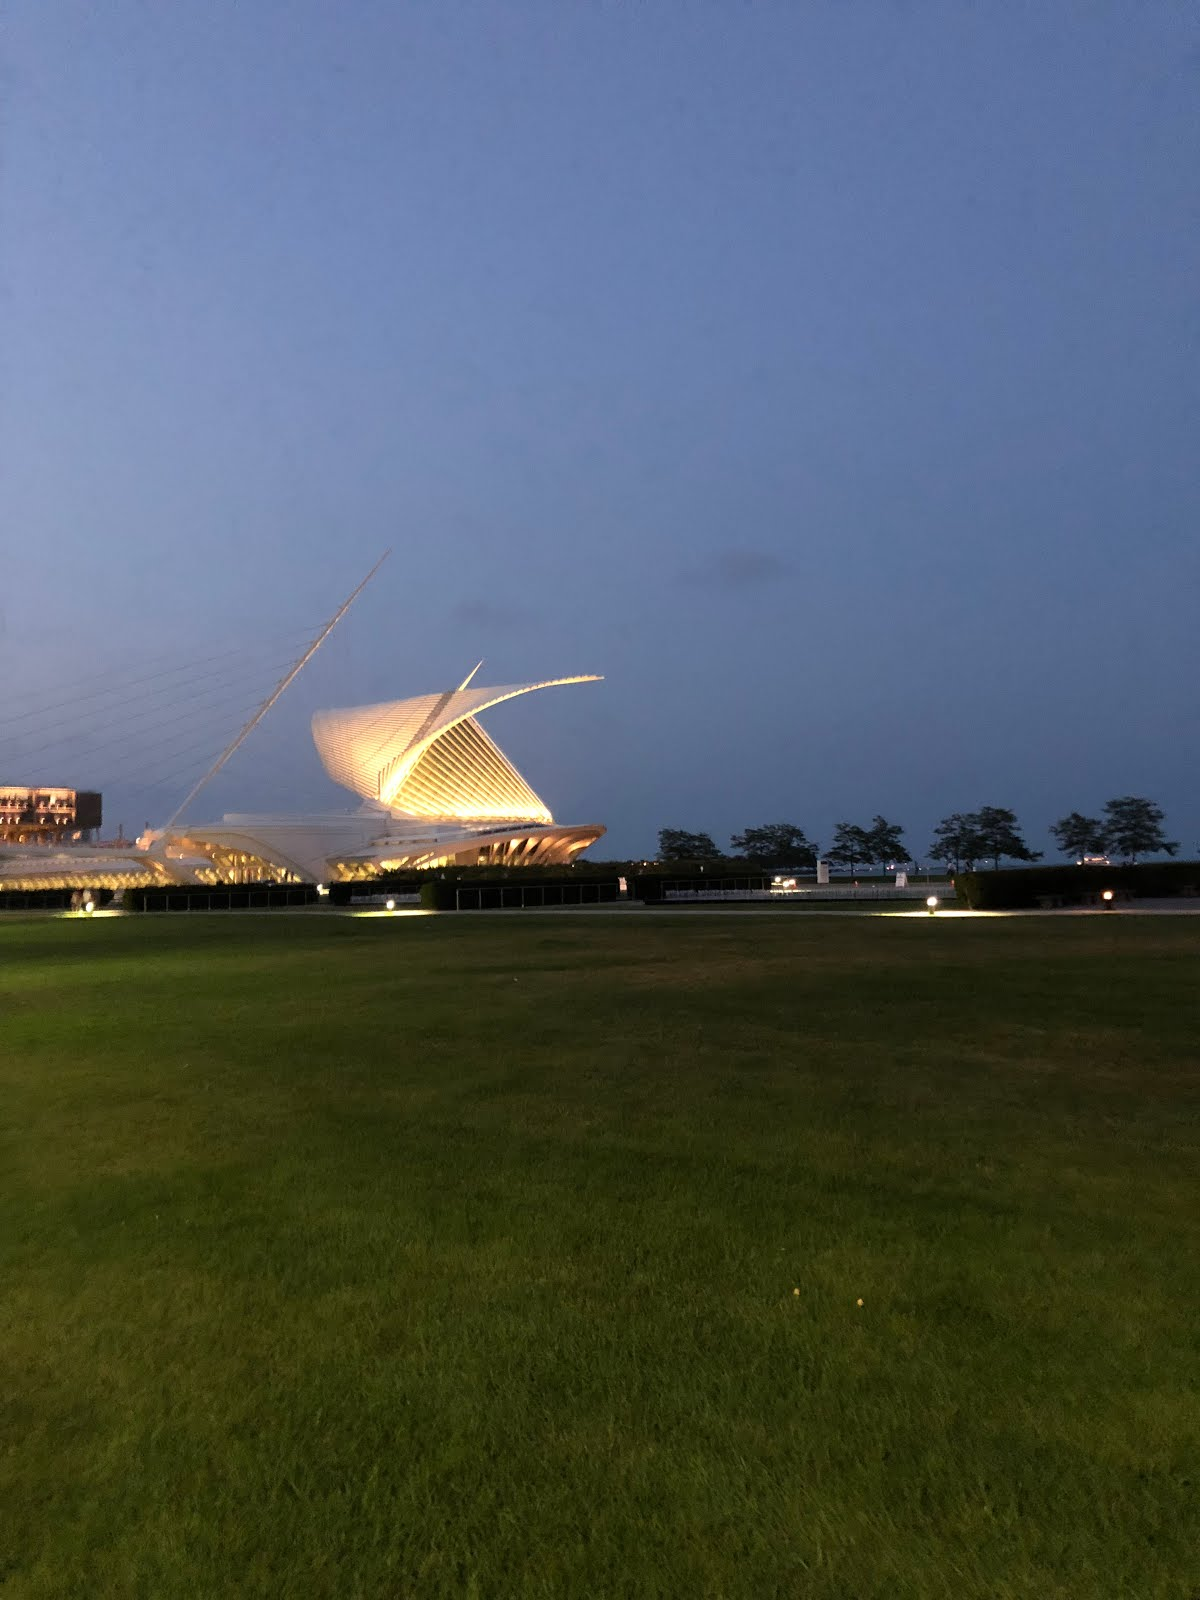 The Calatrava Addition to the Milwaukee Art Museum